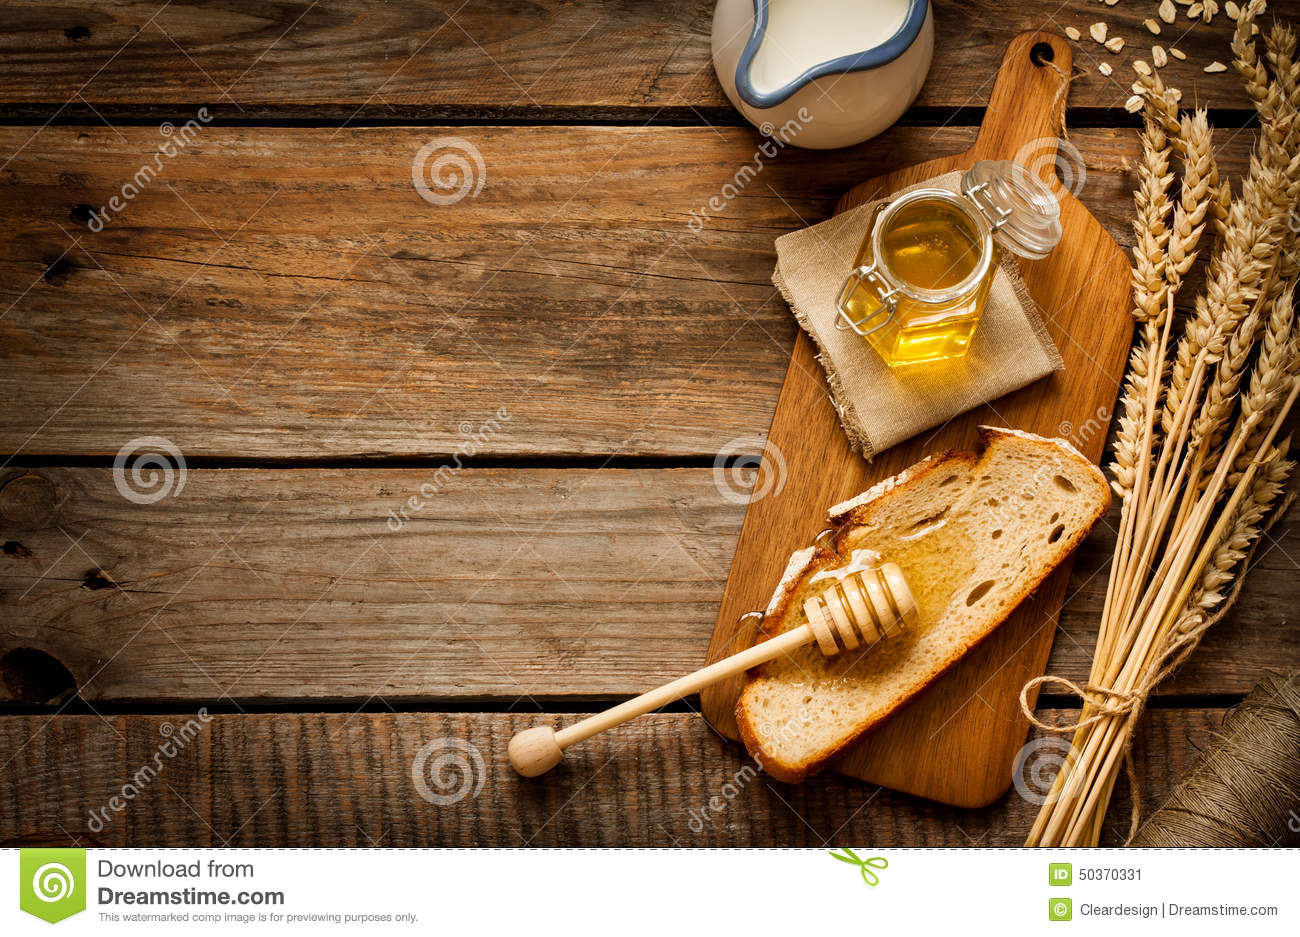 Honey In A Jar Slice Of Bread Wheat And Milk On Vintage Wood Stock Image Image 50370331